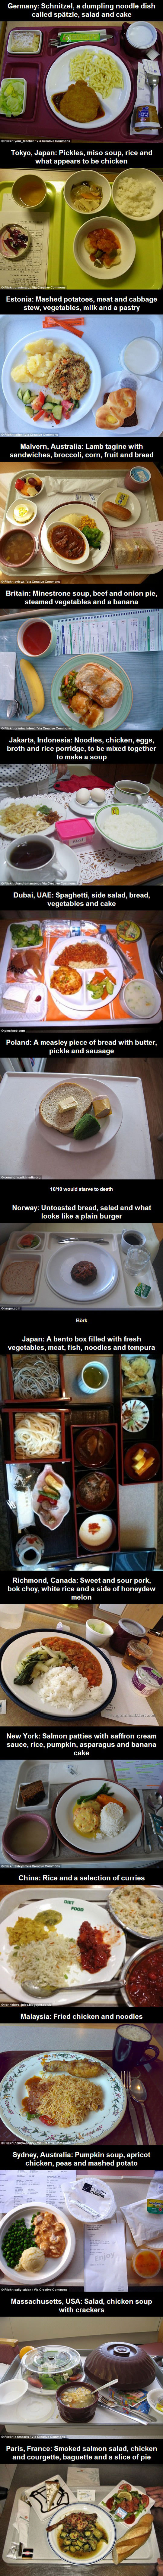 this is what hospital food looks like around the world